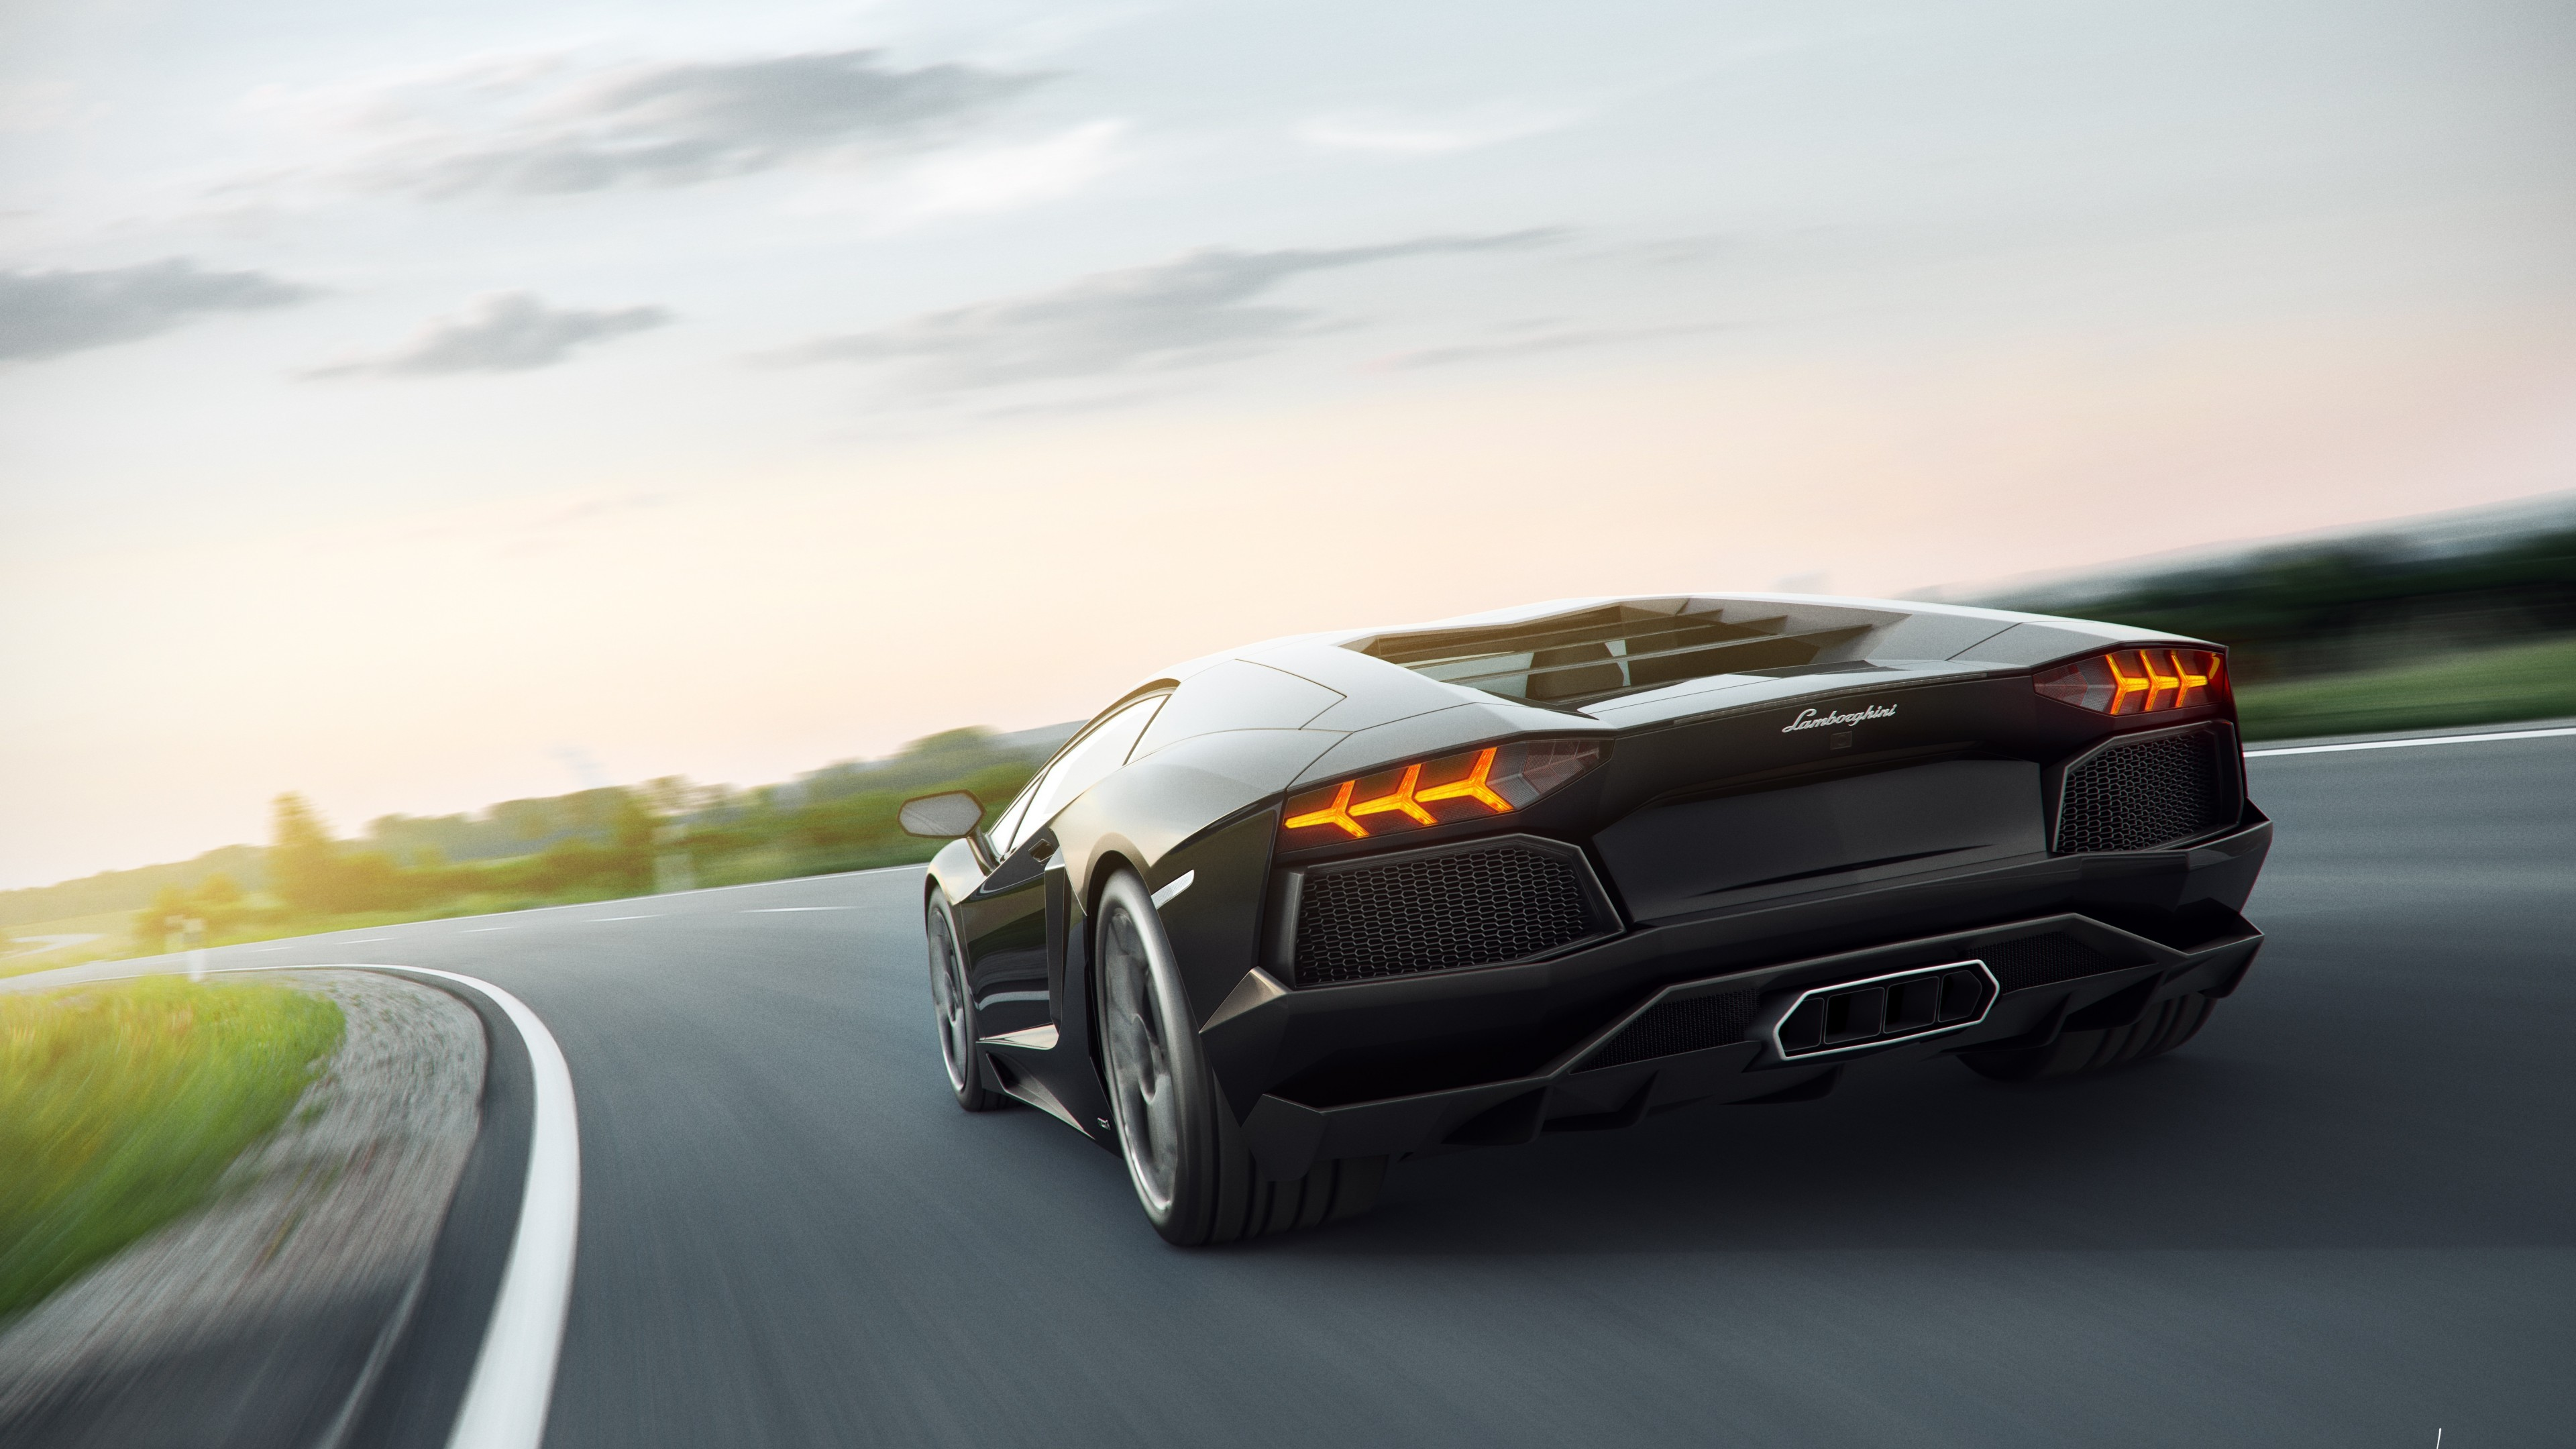 Wallpaper Lamborghini 5k 4k Wallpaper 8k Supercar Aventador